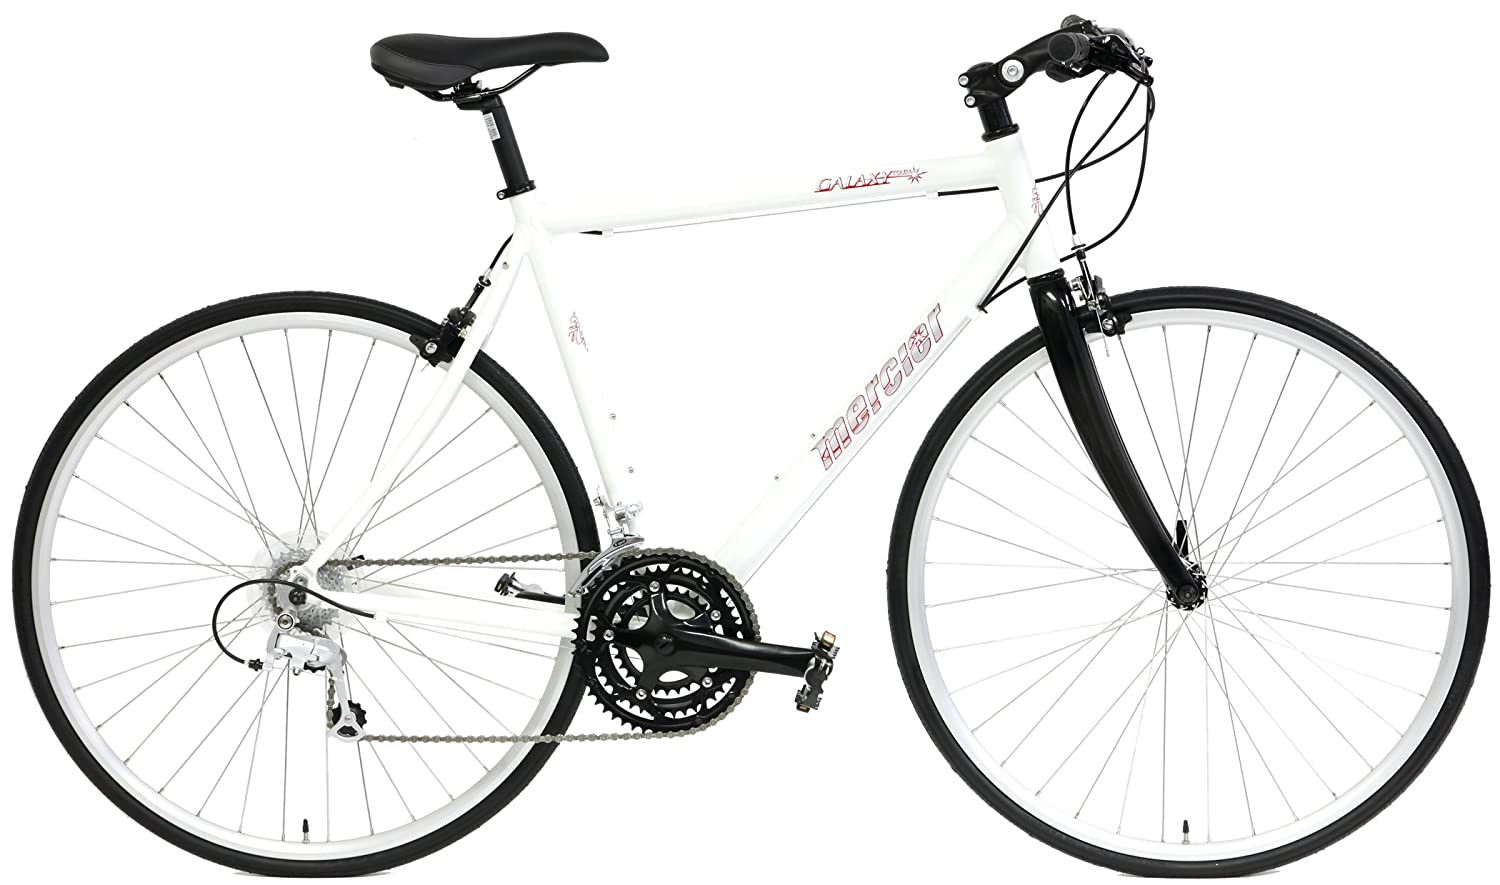 Mercier Galaxy Tour Hybrid 700c Comfort Bike Shimano 24 Speed with Flat Bars and Carbon Fiber Fork